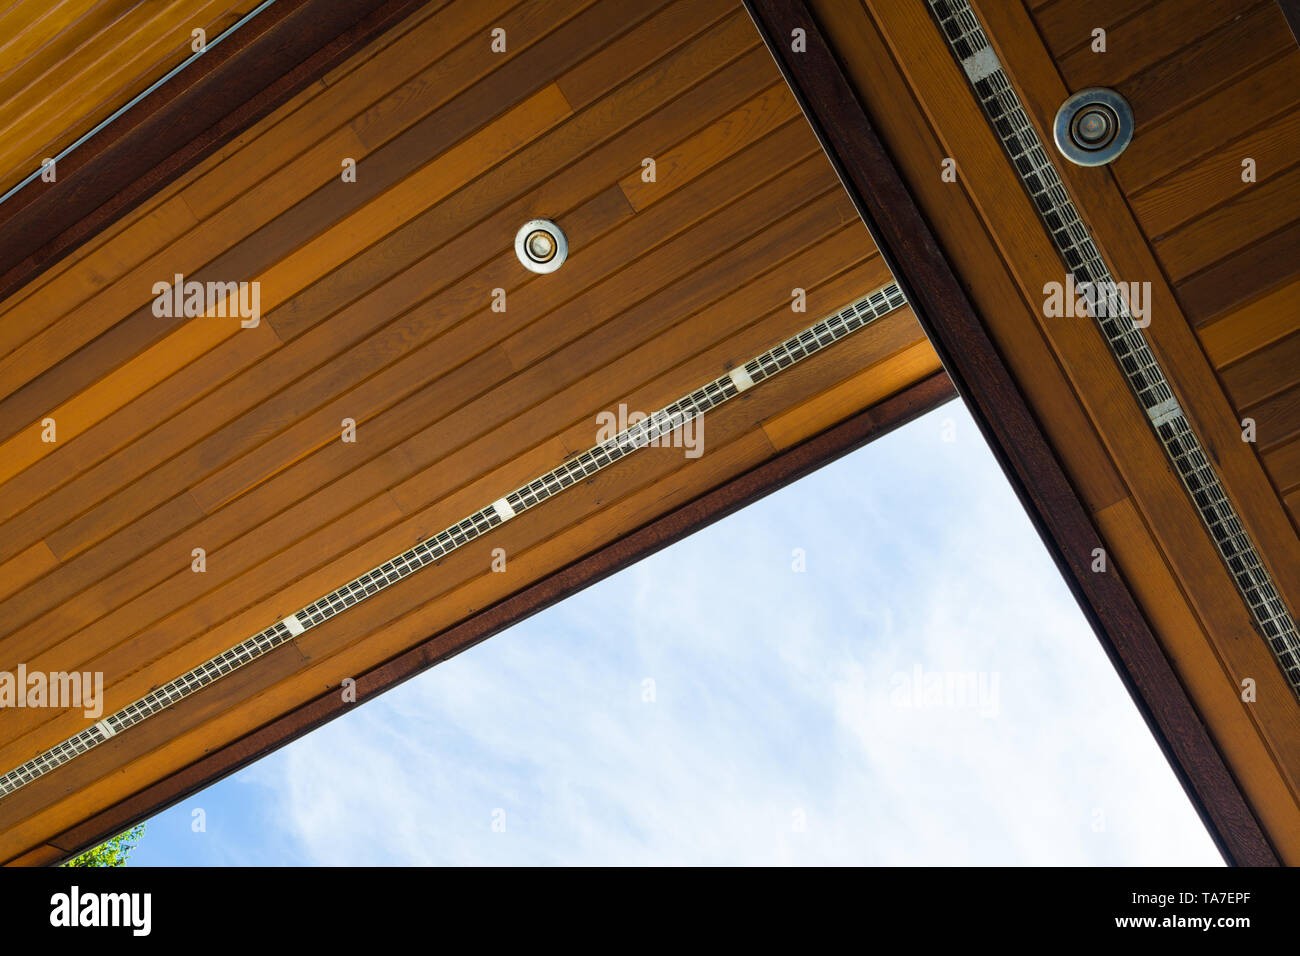 Abstract image of overlapping roof soffits with cedar strips and ventillation on a waterfront property on the Sunshine Coast of British Columbia Canad - Stock Image